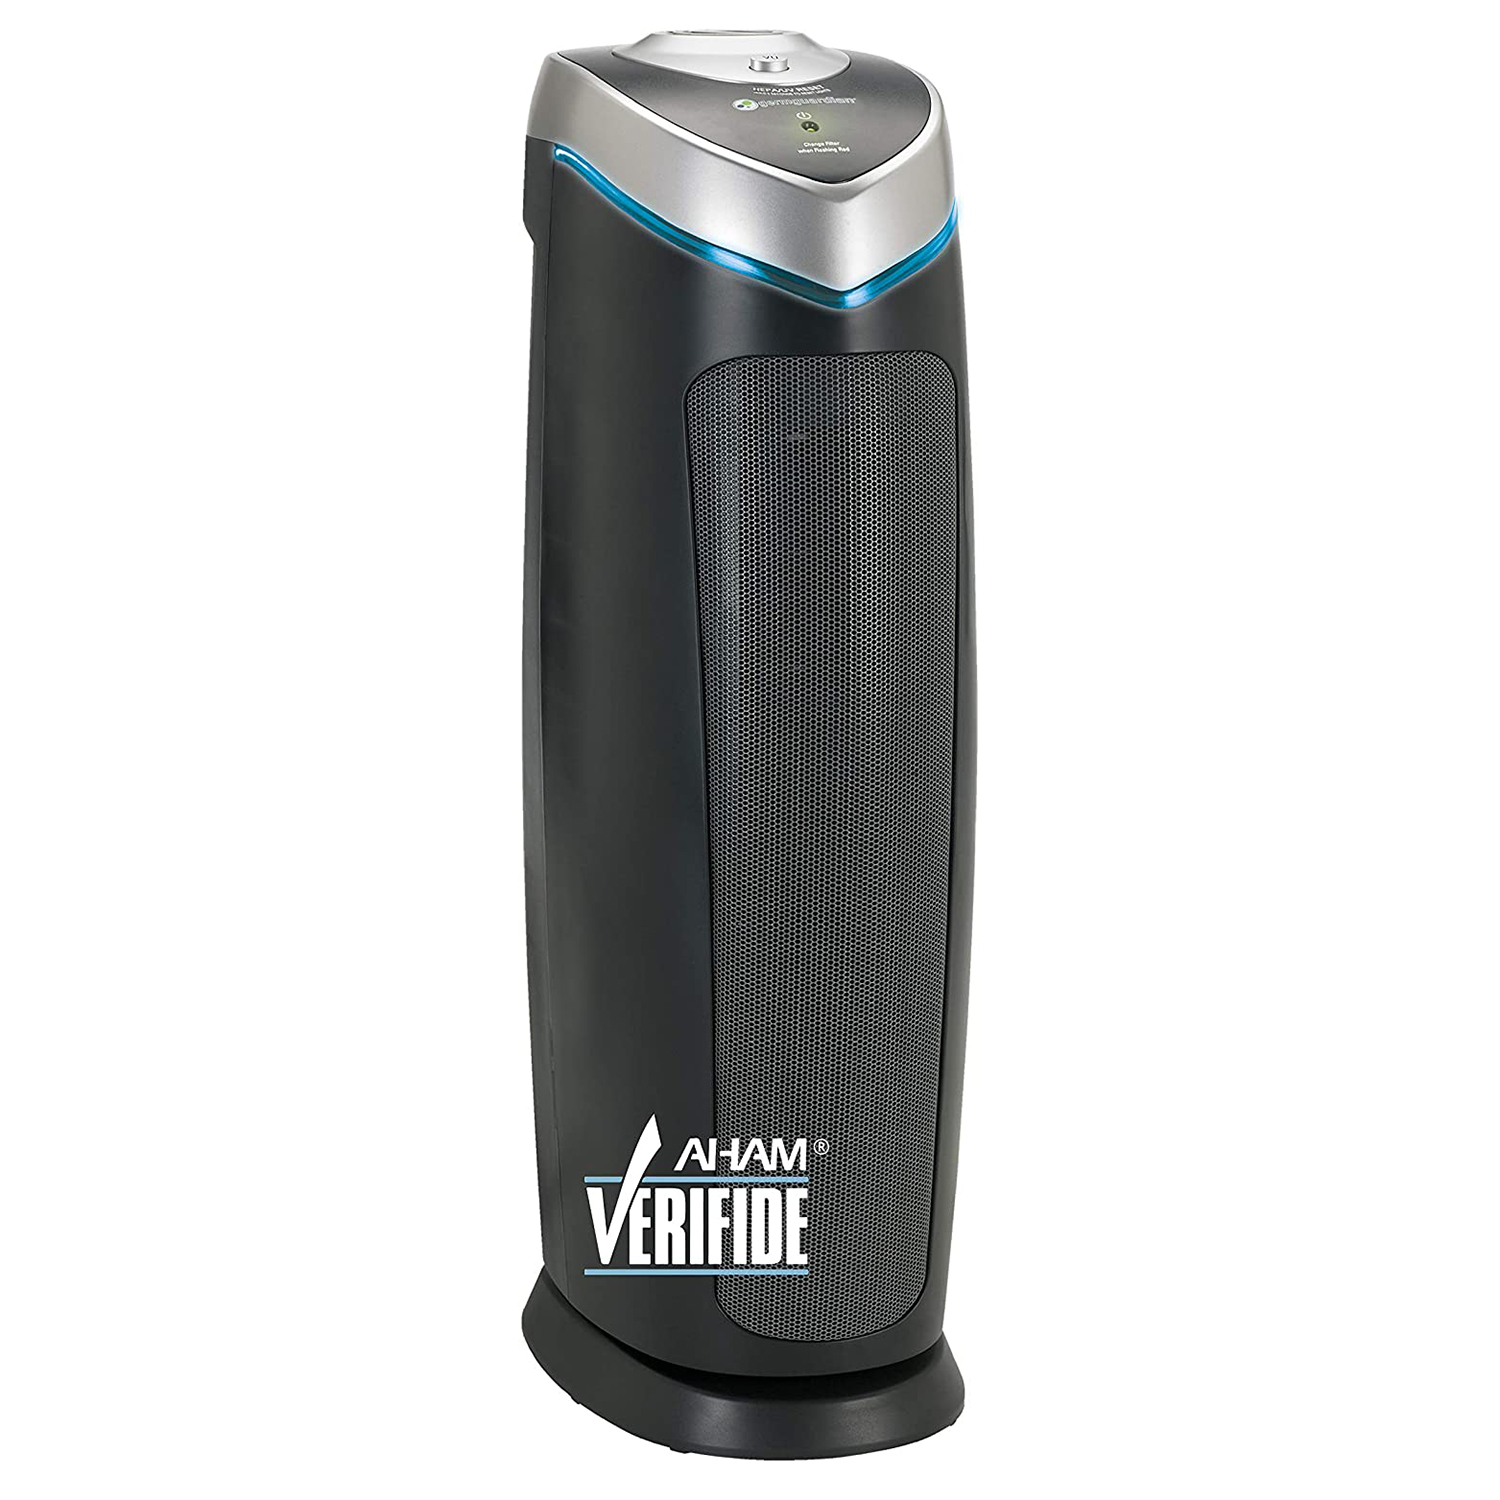 Germ Guardian True HEPA Filter Air Purifier with UV Light Sanitizer